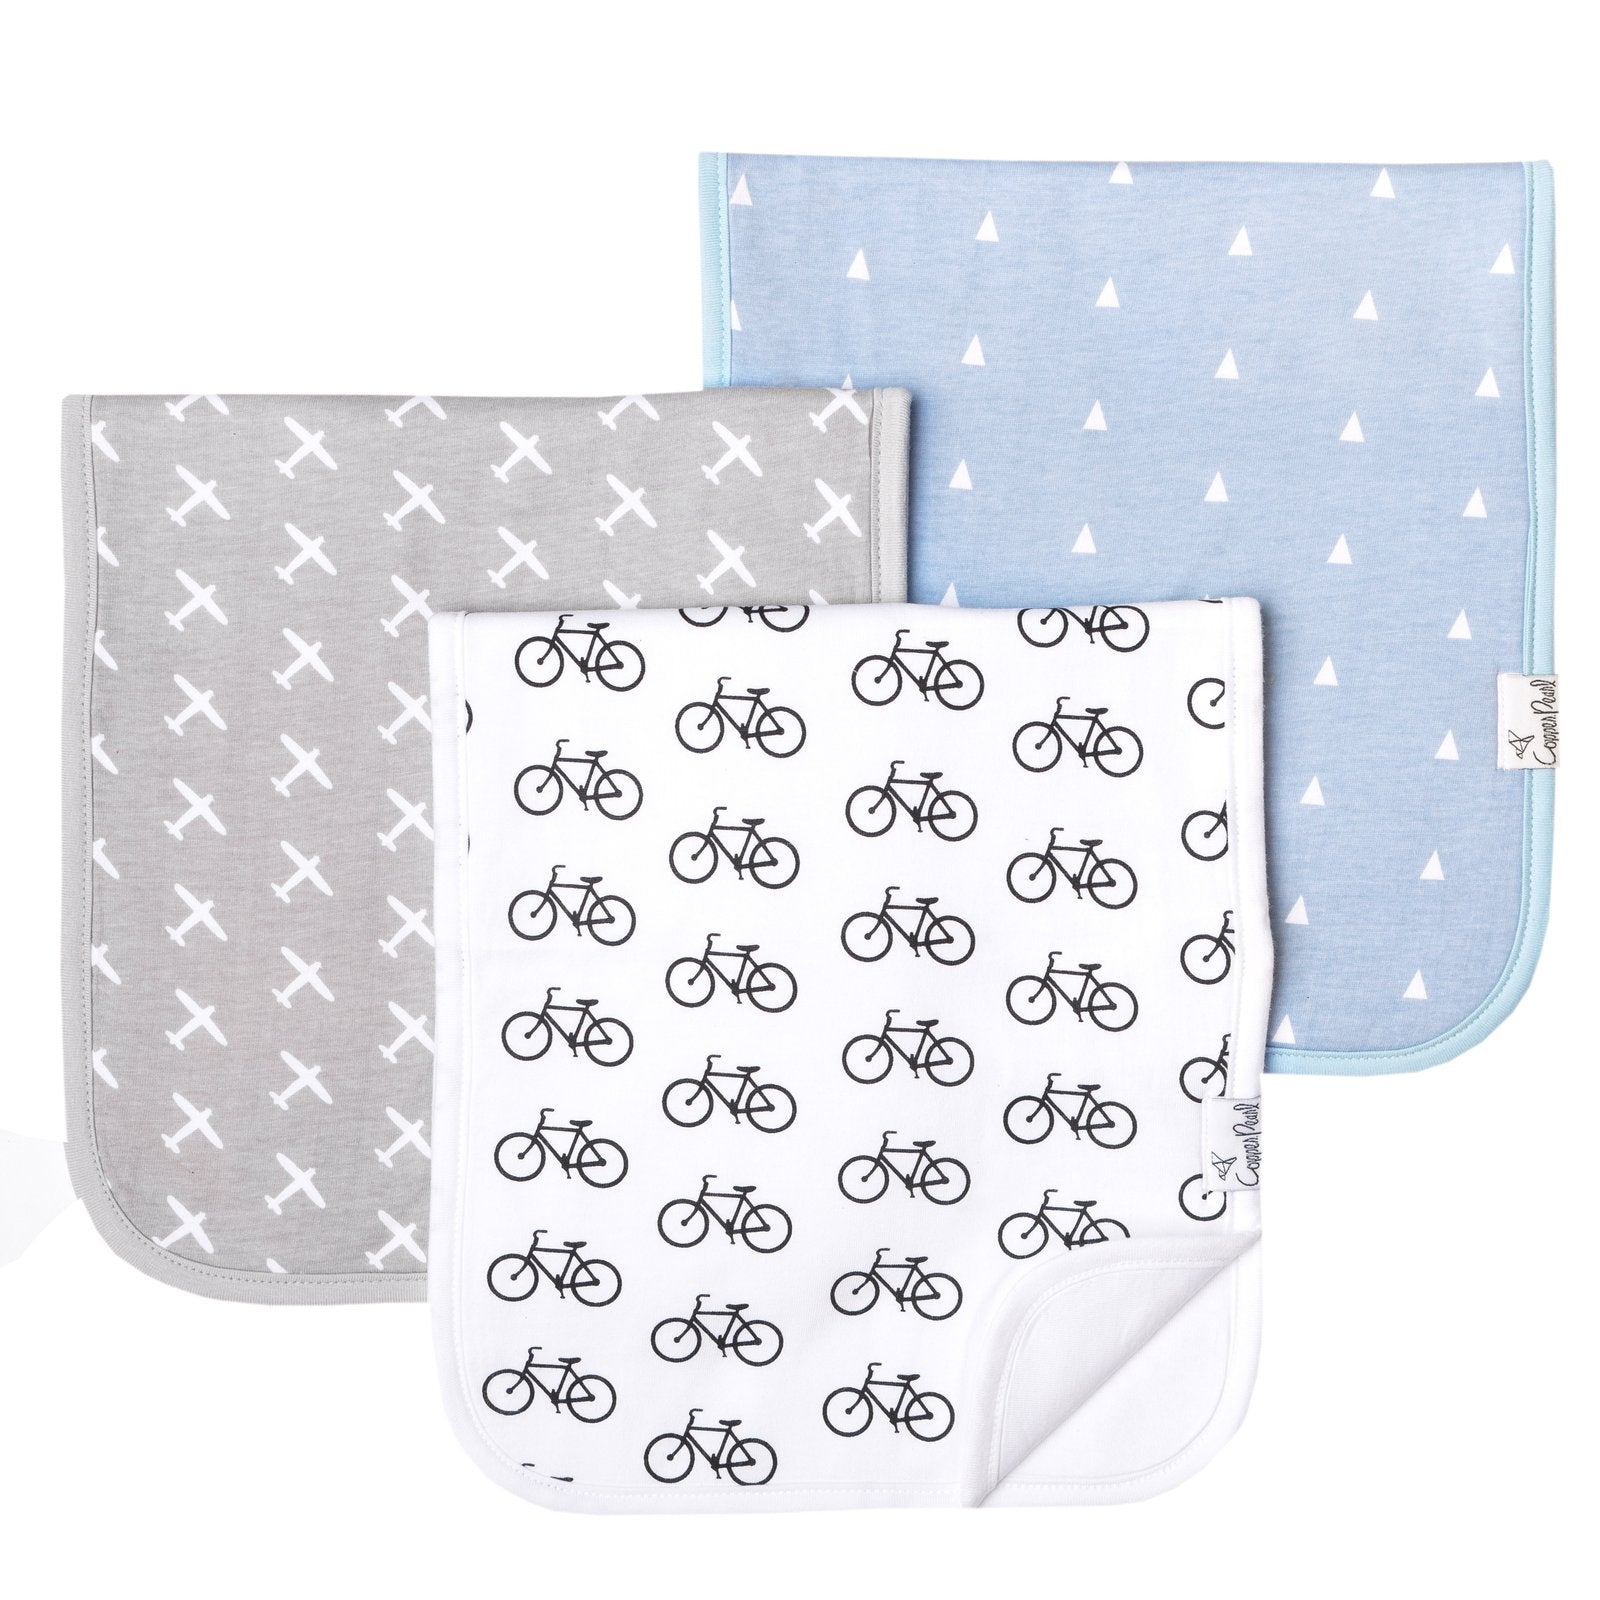 Cruise Burp Cloth Set (3-pack)